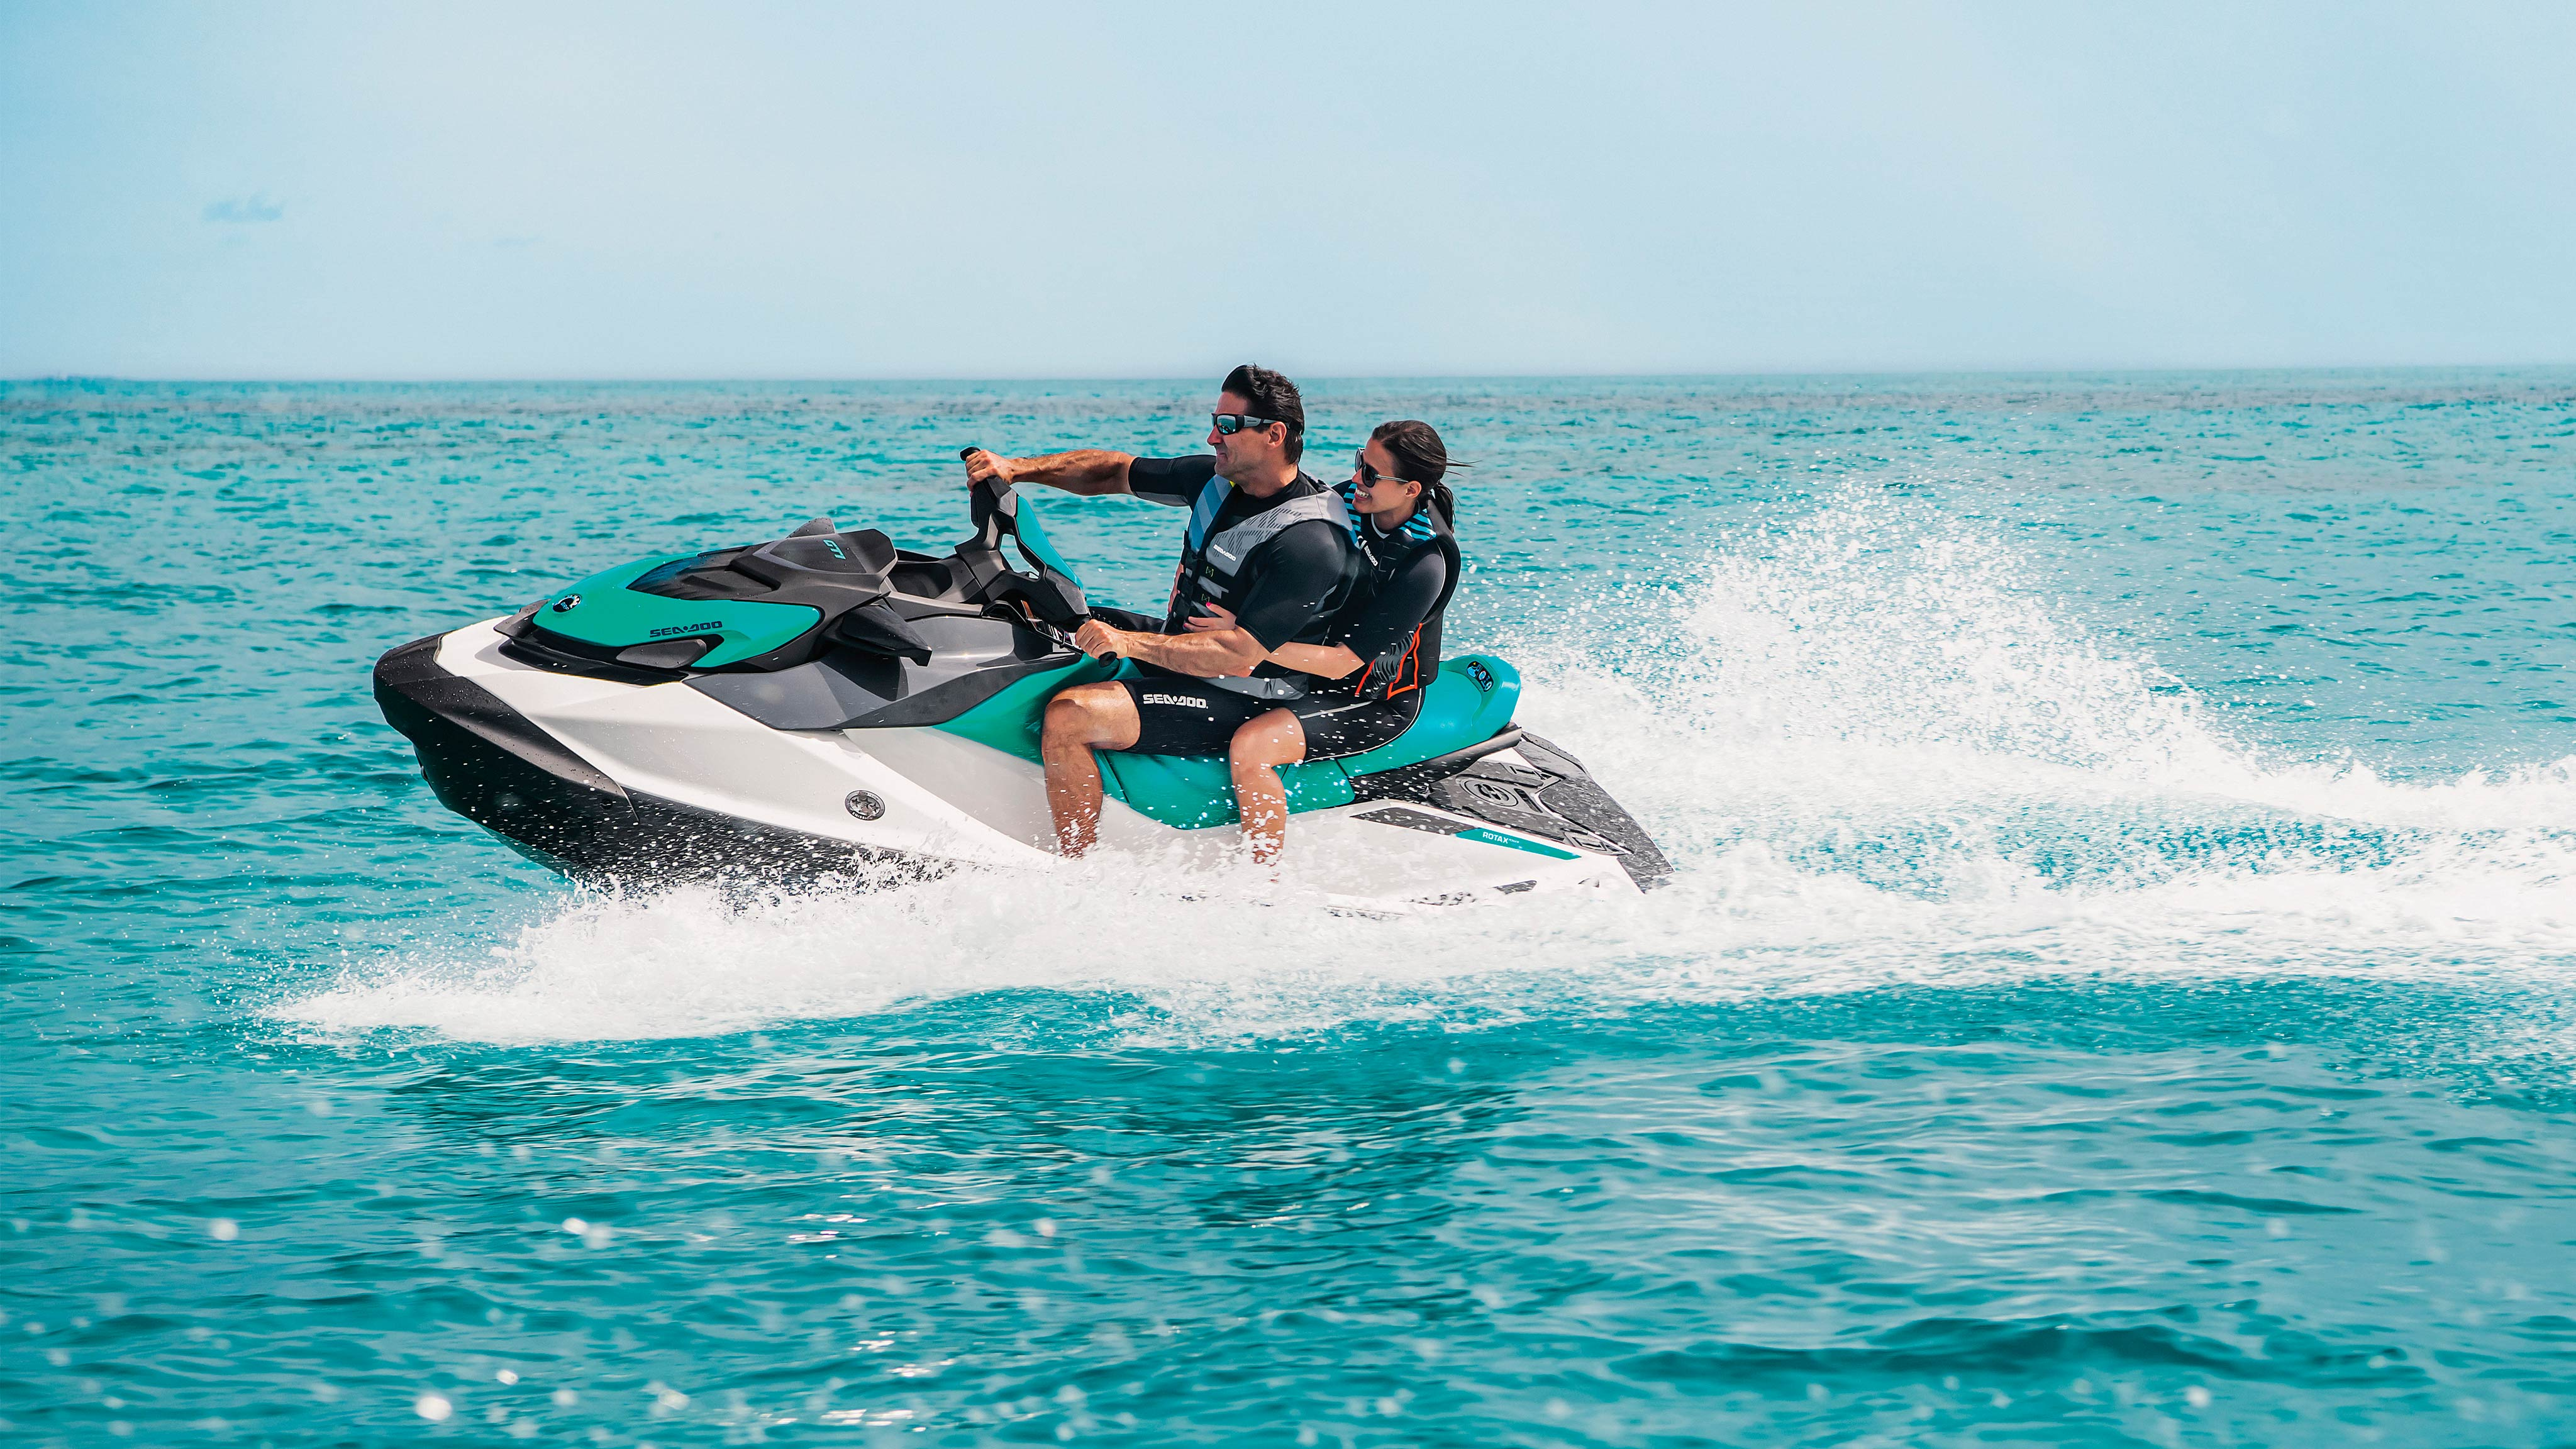 A couple riding on the Sea-Doo GTI